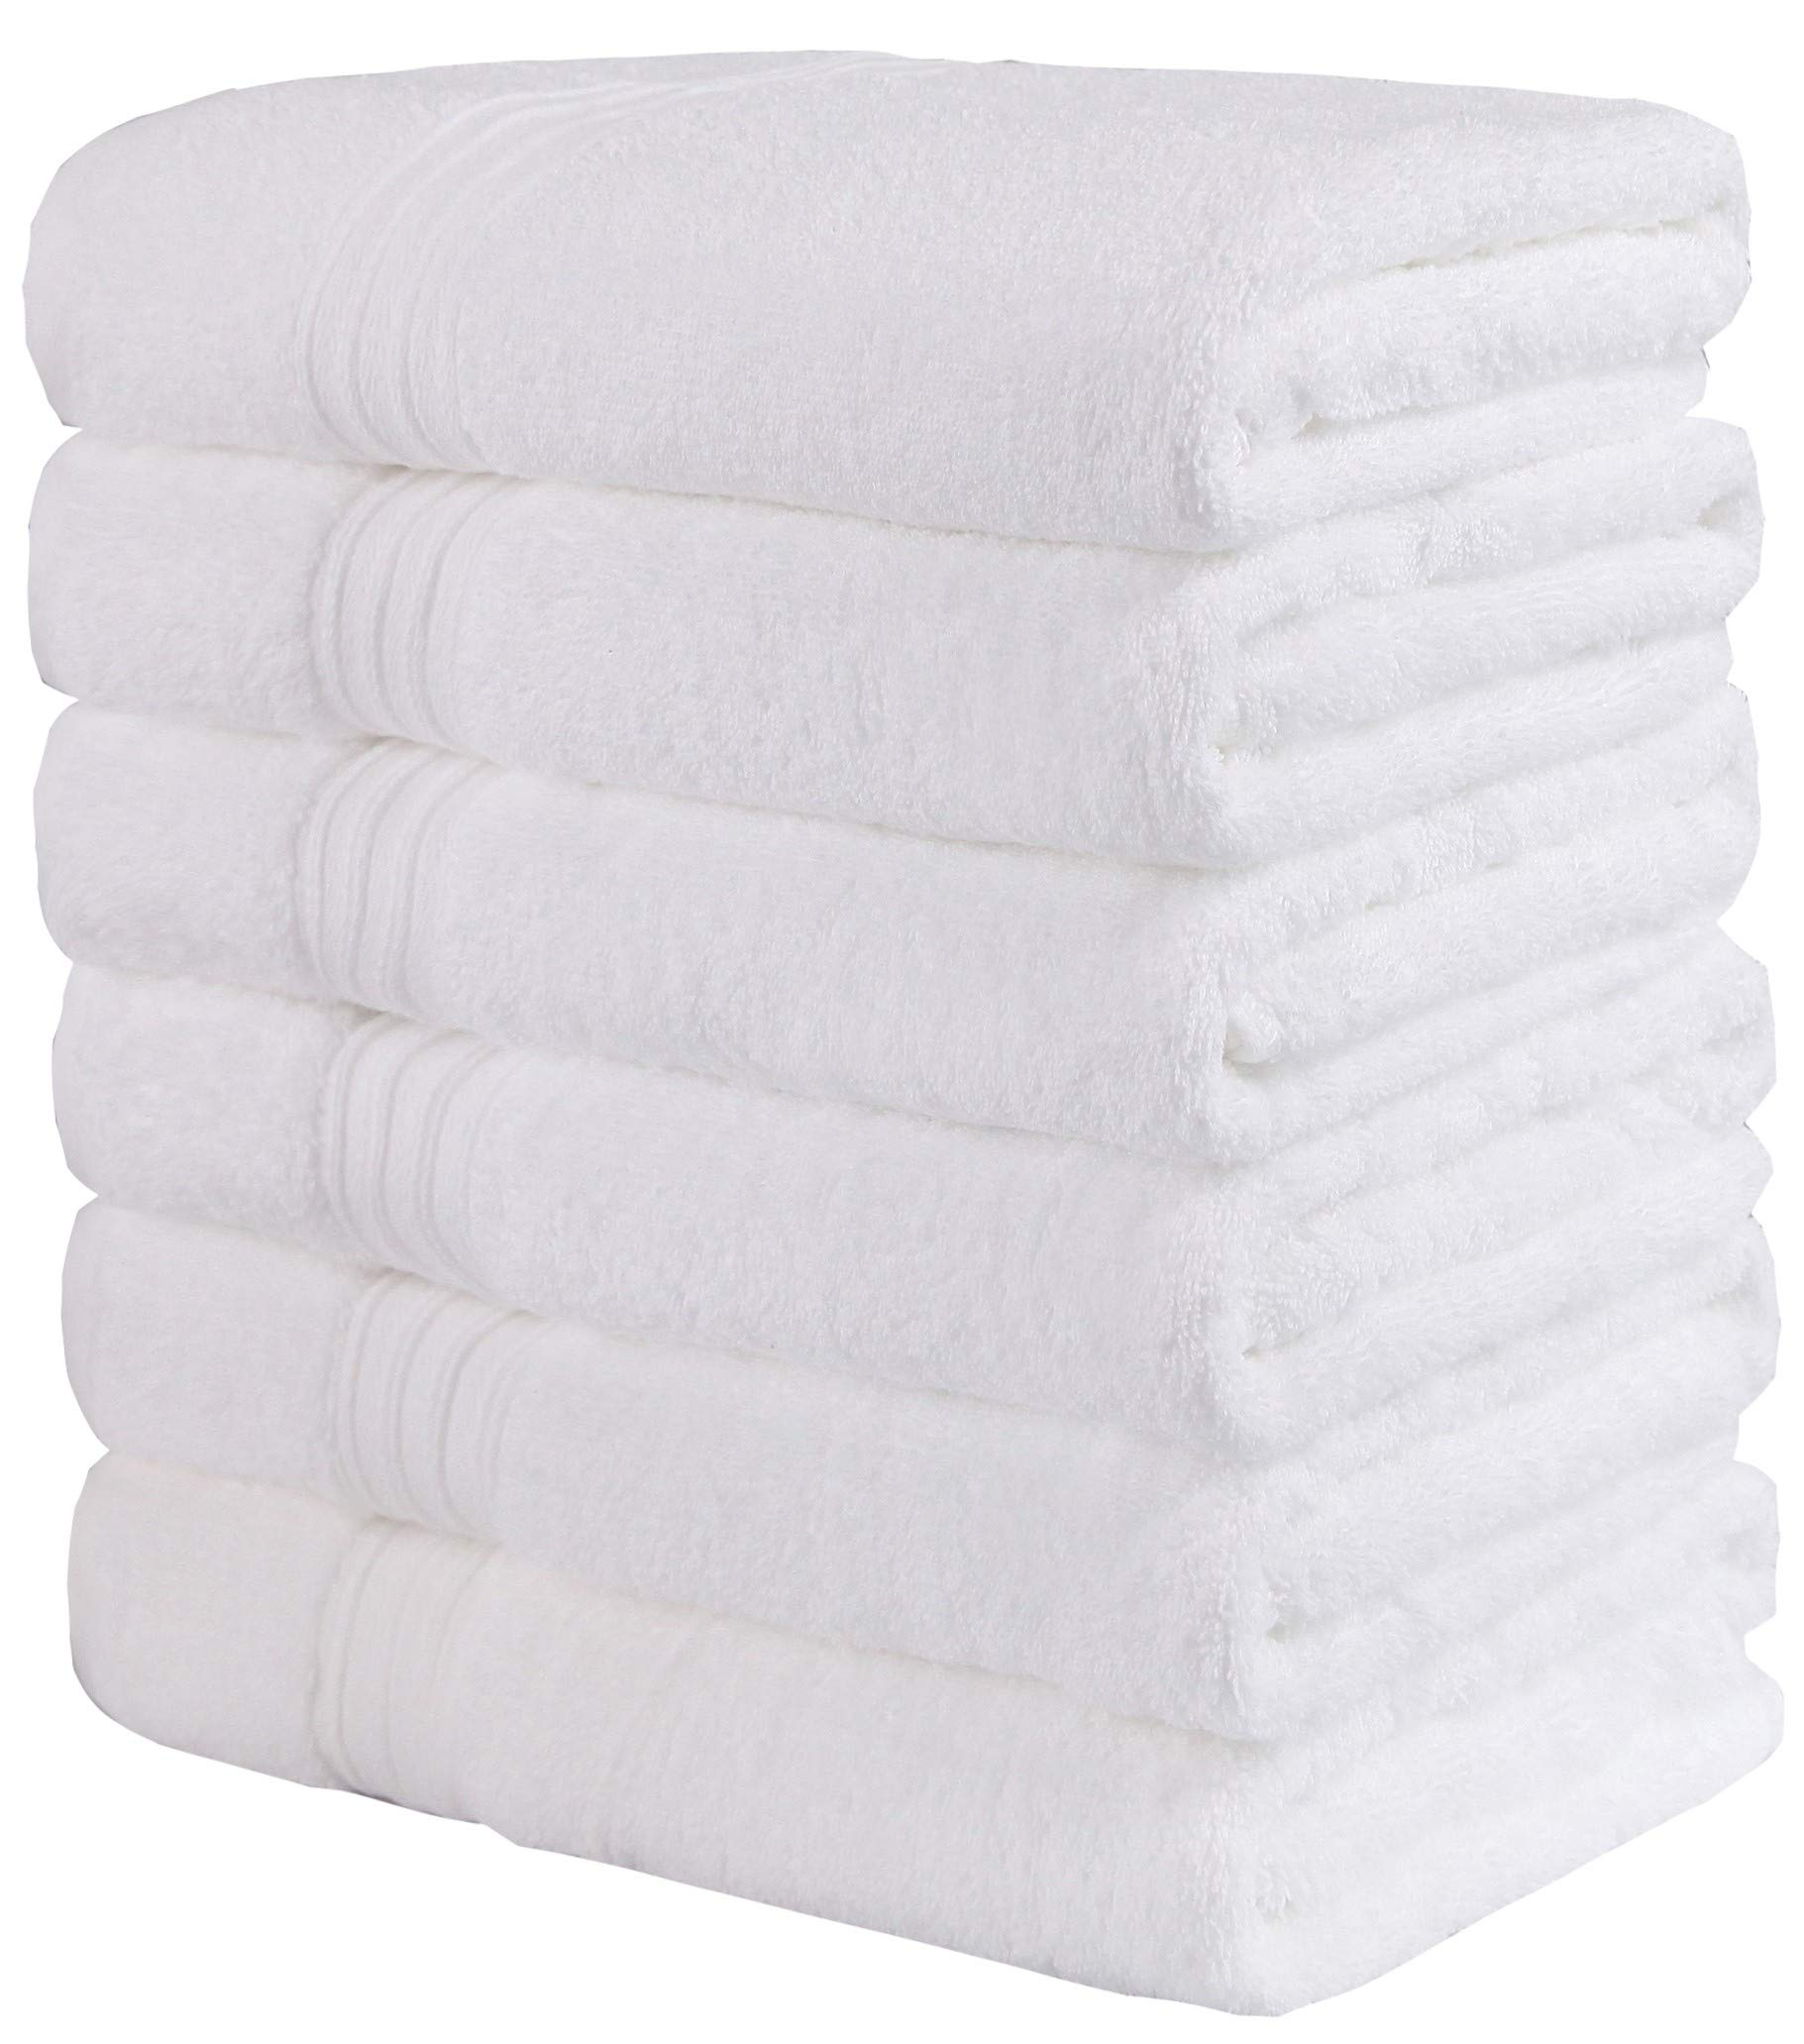 GraceAier Luxury Cotton White Bath Towels for Hotel,Spa,Pool,Gym (6-Pack,24 x 48 Inches) Lightweight Soft Absorbent Ring Spun Cotton Bathroom Towel